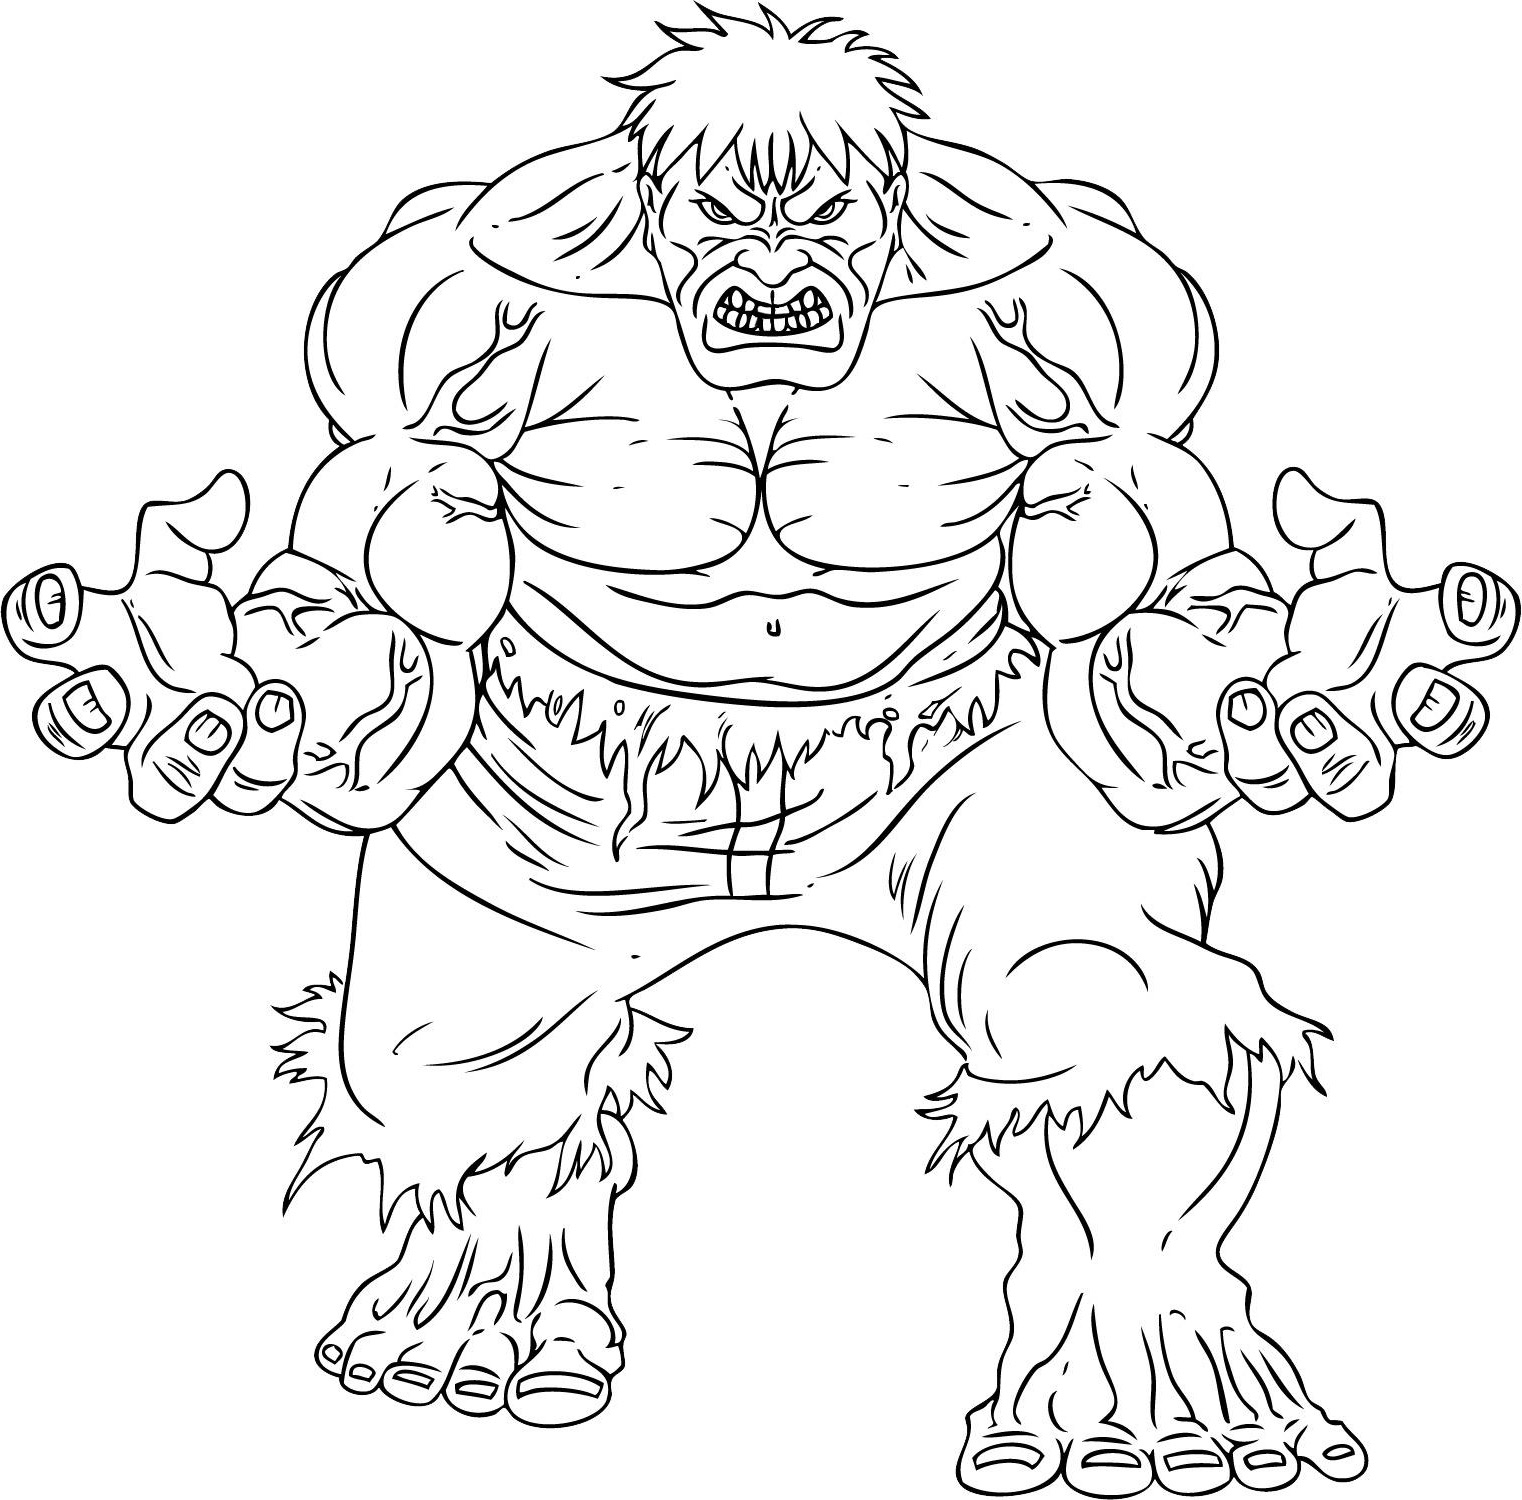 Hulk To Color For Children Hulk Kids Coloring Pages